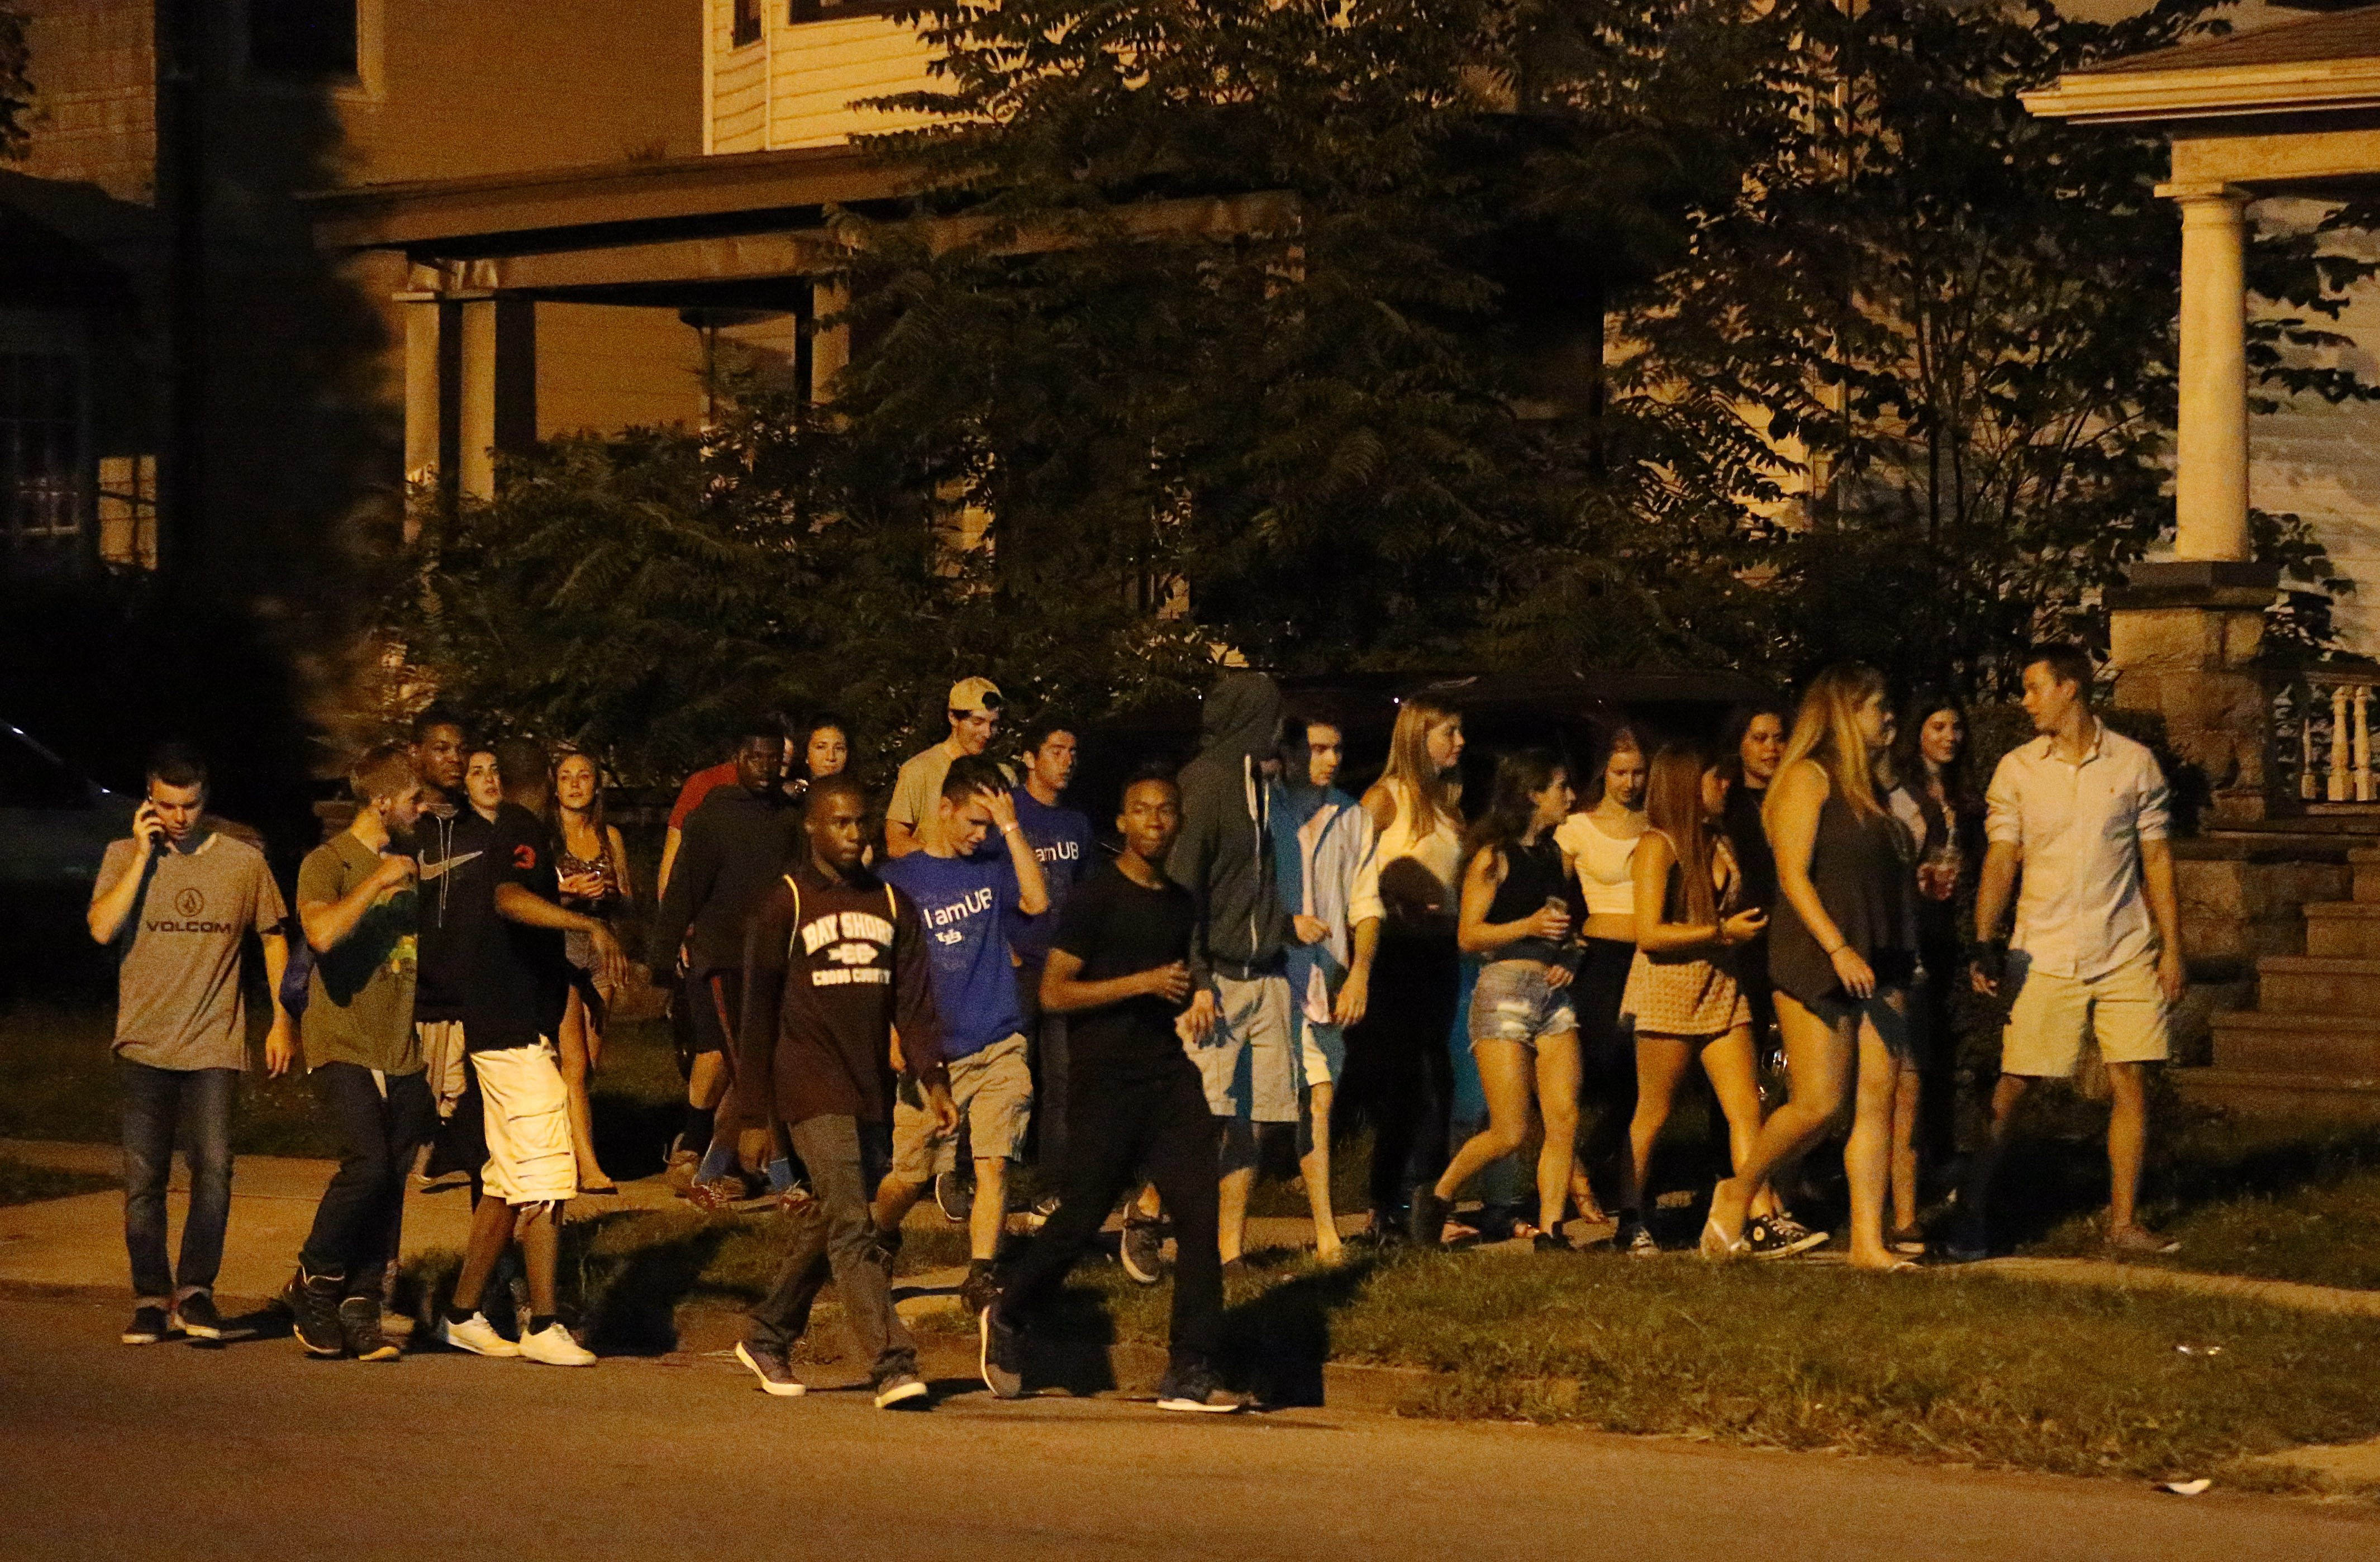 Packs of young people roam the streets of University Heights, disrupting the lives of residents. (Sharon Cantillon/Buffalo News)